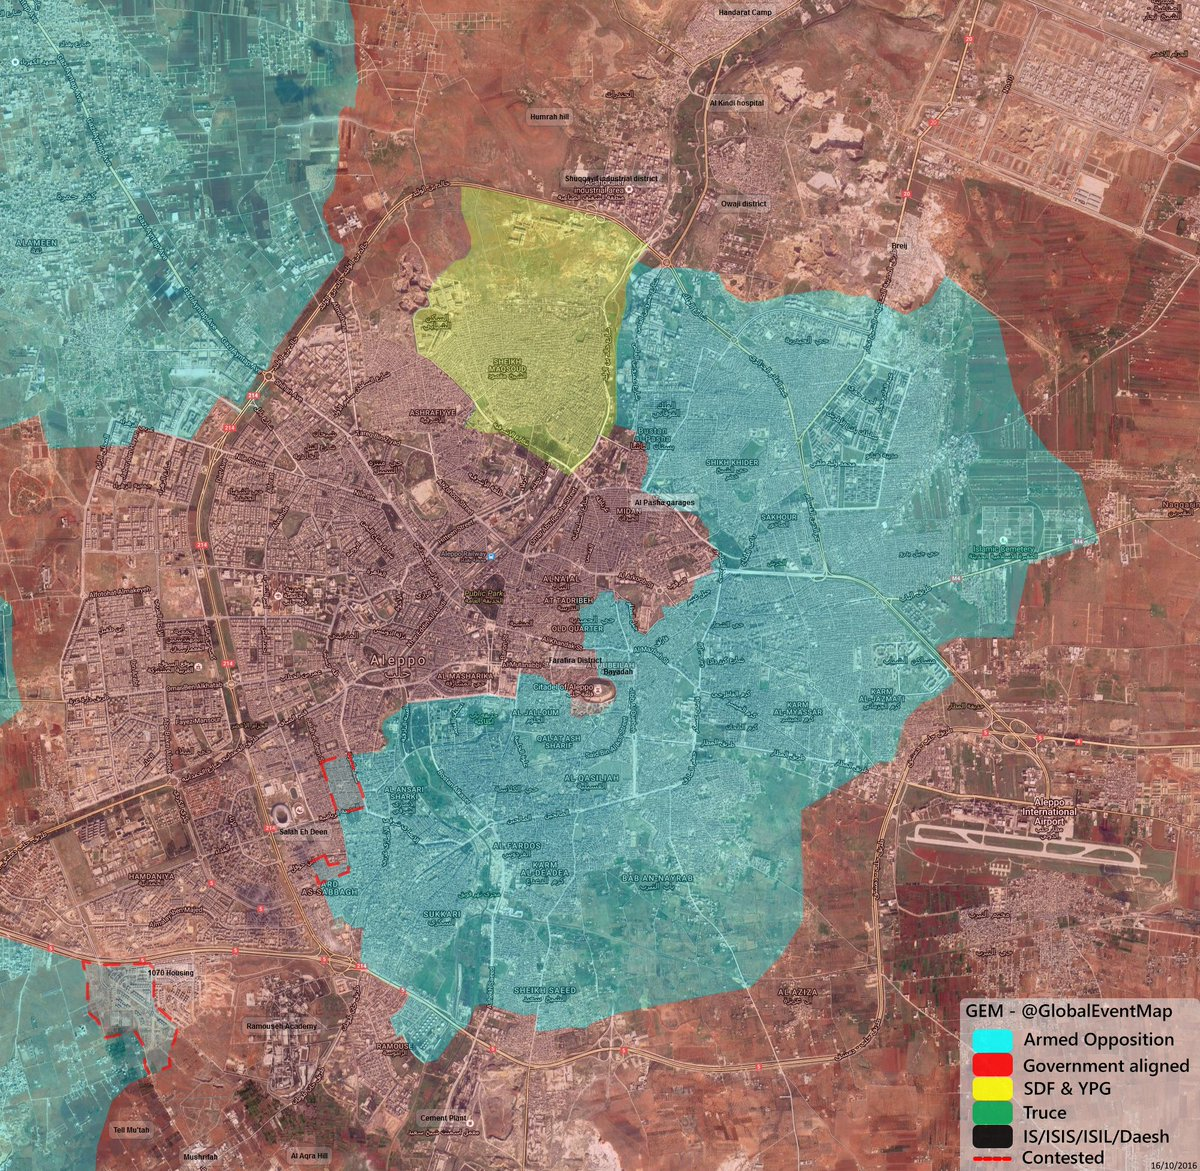 Overview of Military Situation in Aleppo City on October 17, 2016